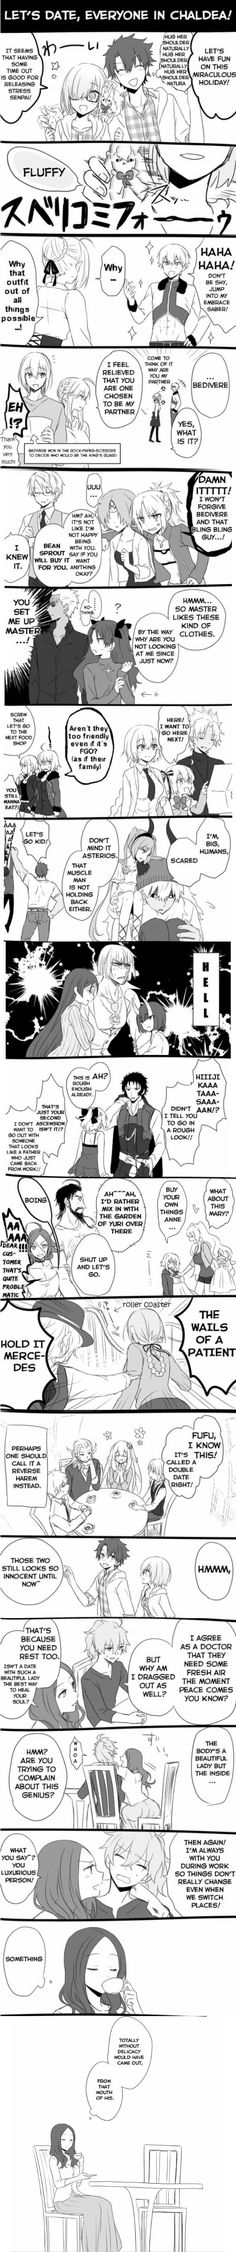 New Memes Funny Dating Ideas Fate Stay Night Series, Fate Stay Night Anime, Cute Comics, Funny Comics, New Memes, Funny Memes, Werewolf Games, Anime Manga, Anime Art